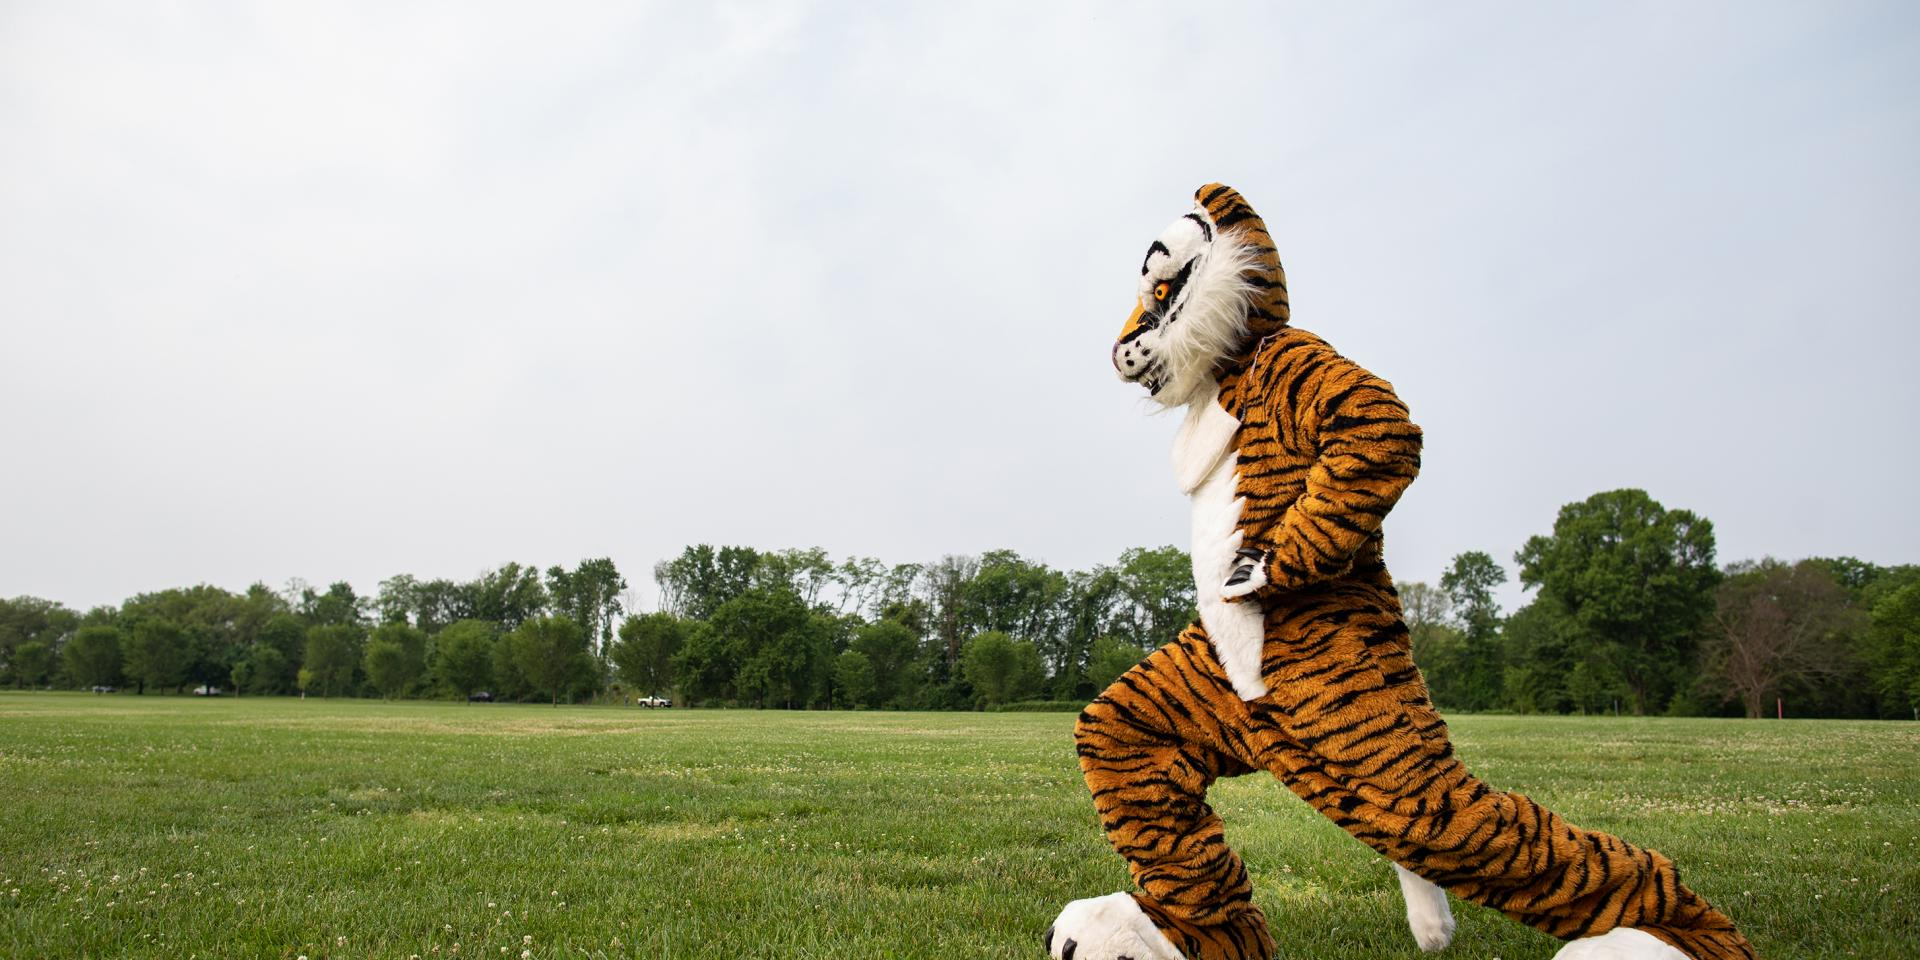 Tiger mascot running across a field